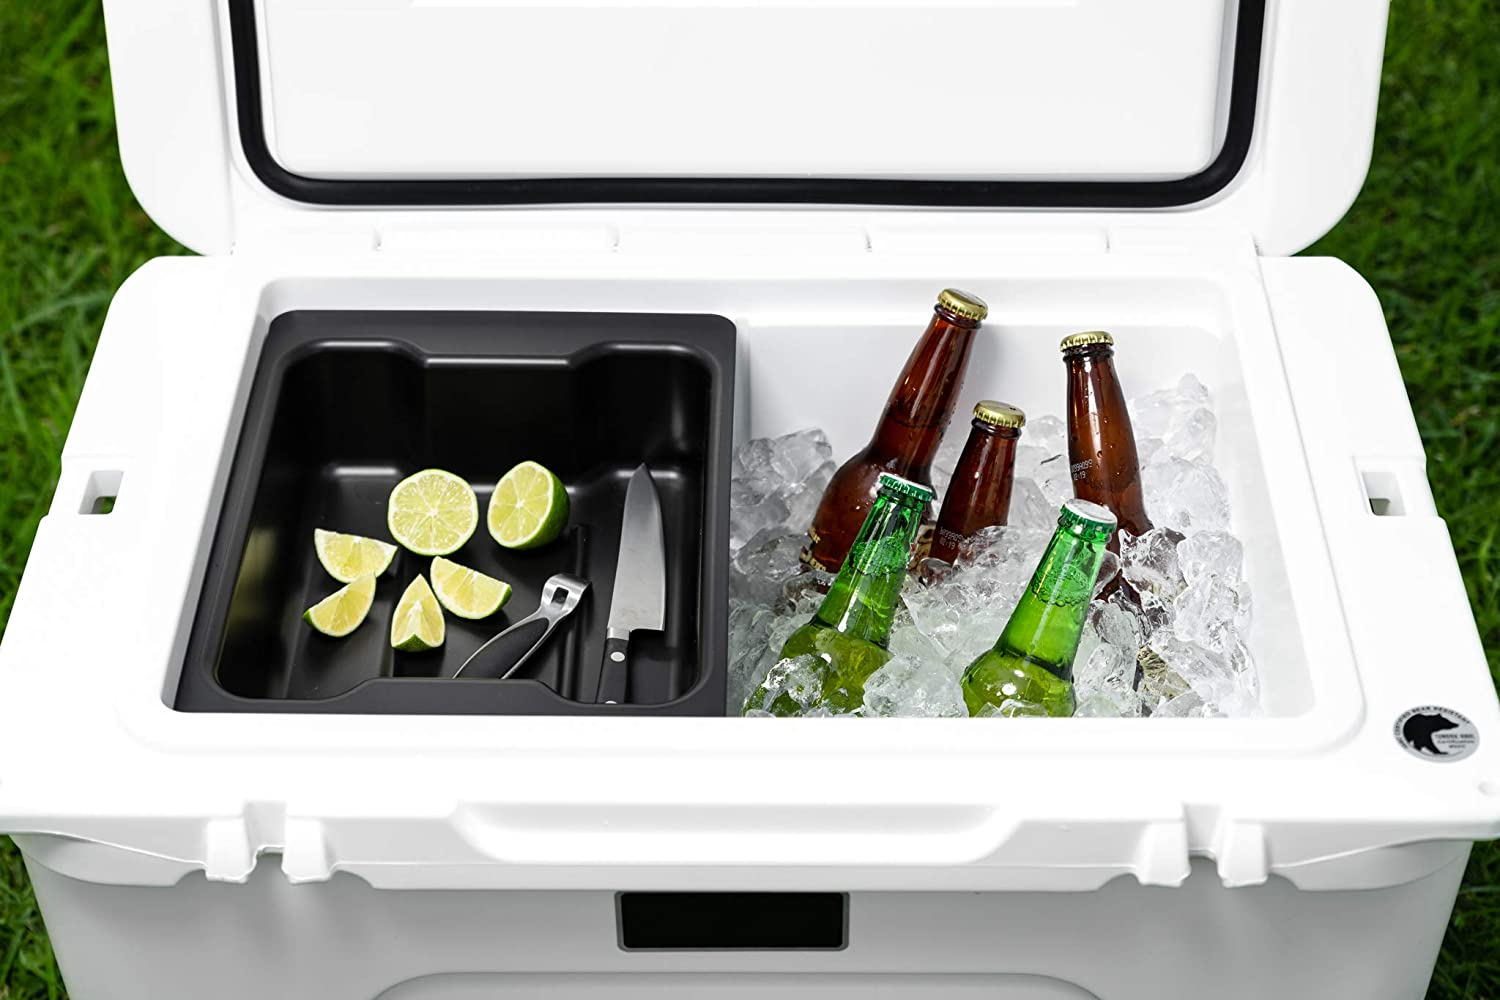 Dry Goods Tray for Yeti Tundra Haul Cooler - Specifically Designed to Work with The New Yeti Haul Wheeled Cooler